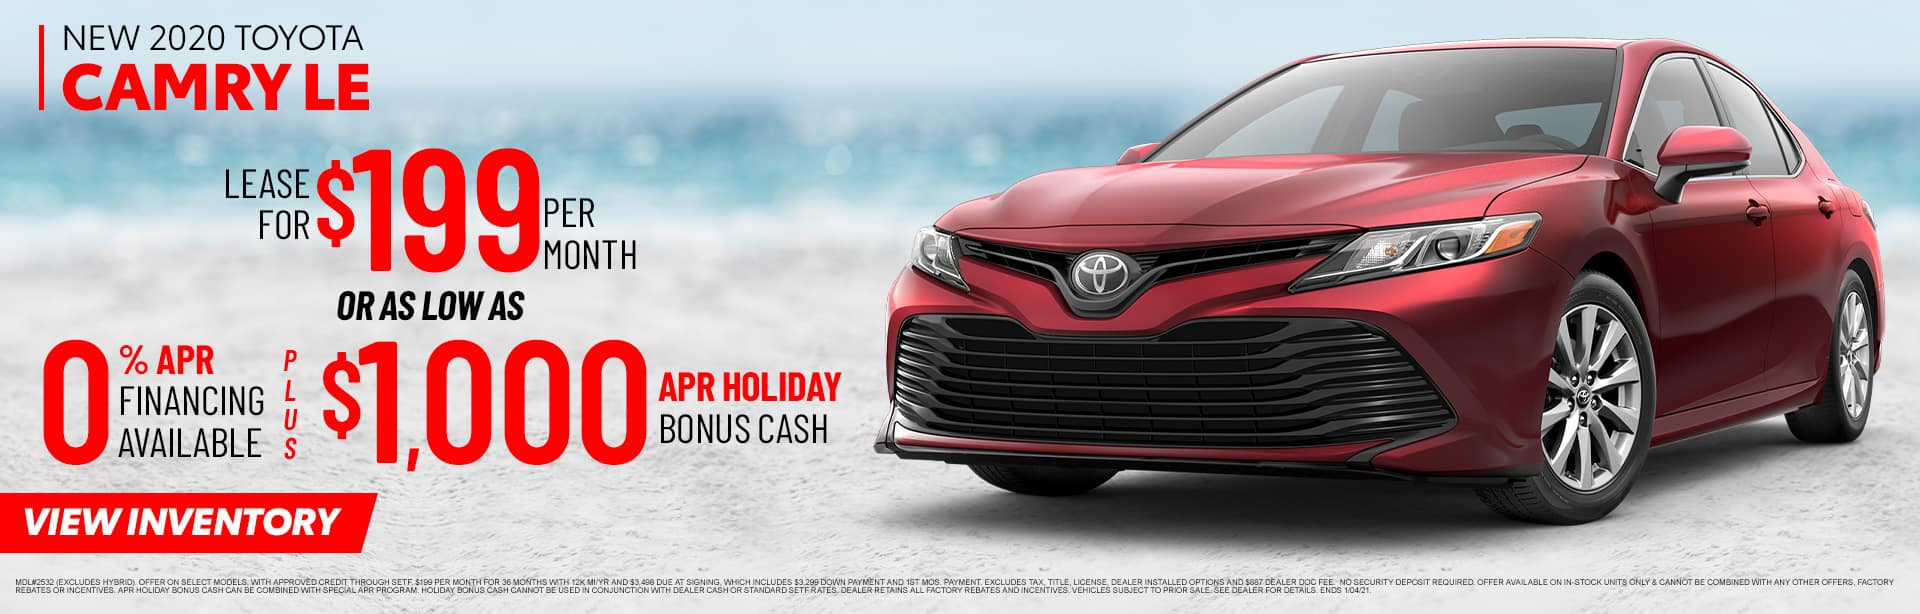 New 2020 Toyota Camry LE | Sales NOW at Toyota of Fort Walton Beach